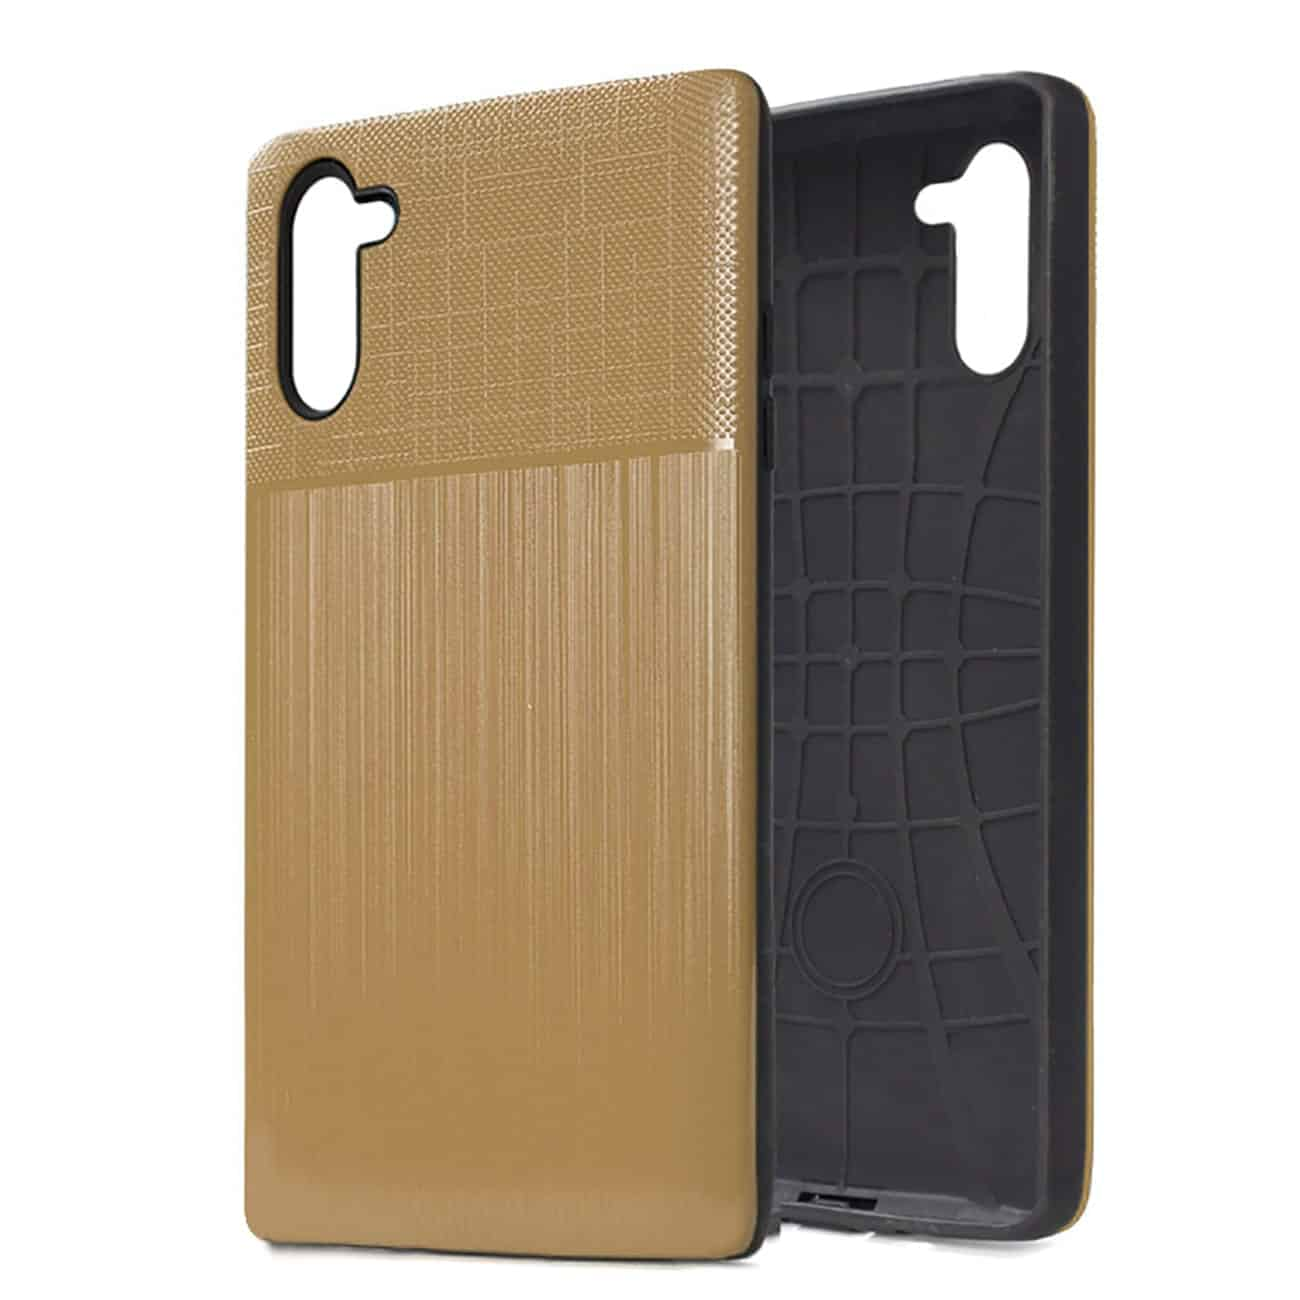 ISTIK SAMSUNG GALAXY NOTE 10 Lightweight Case In Gold